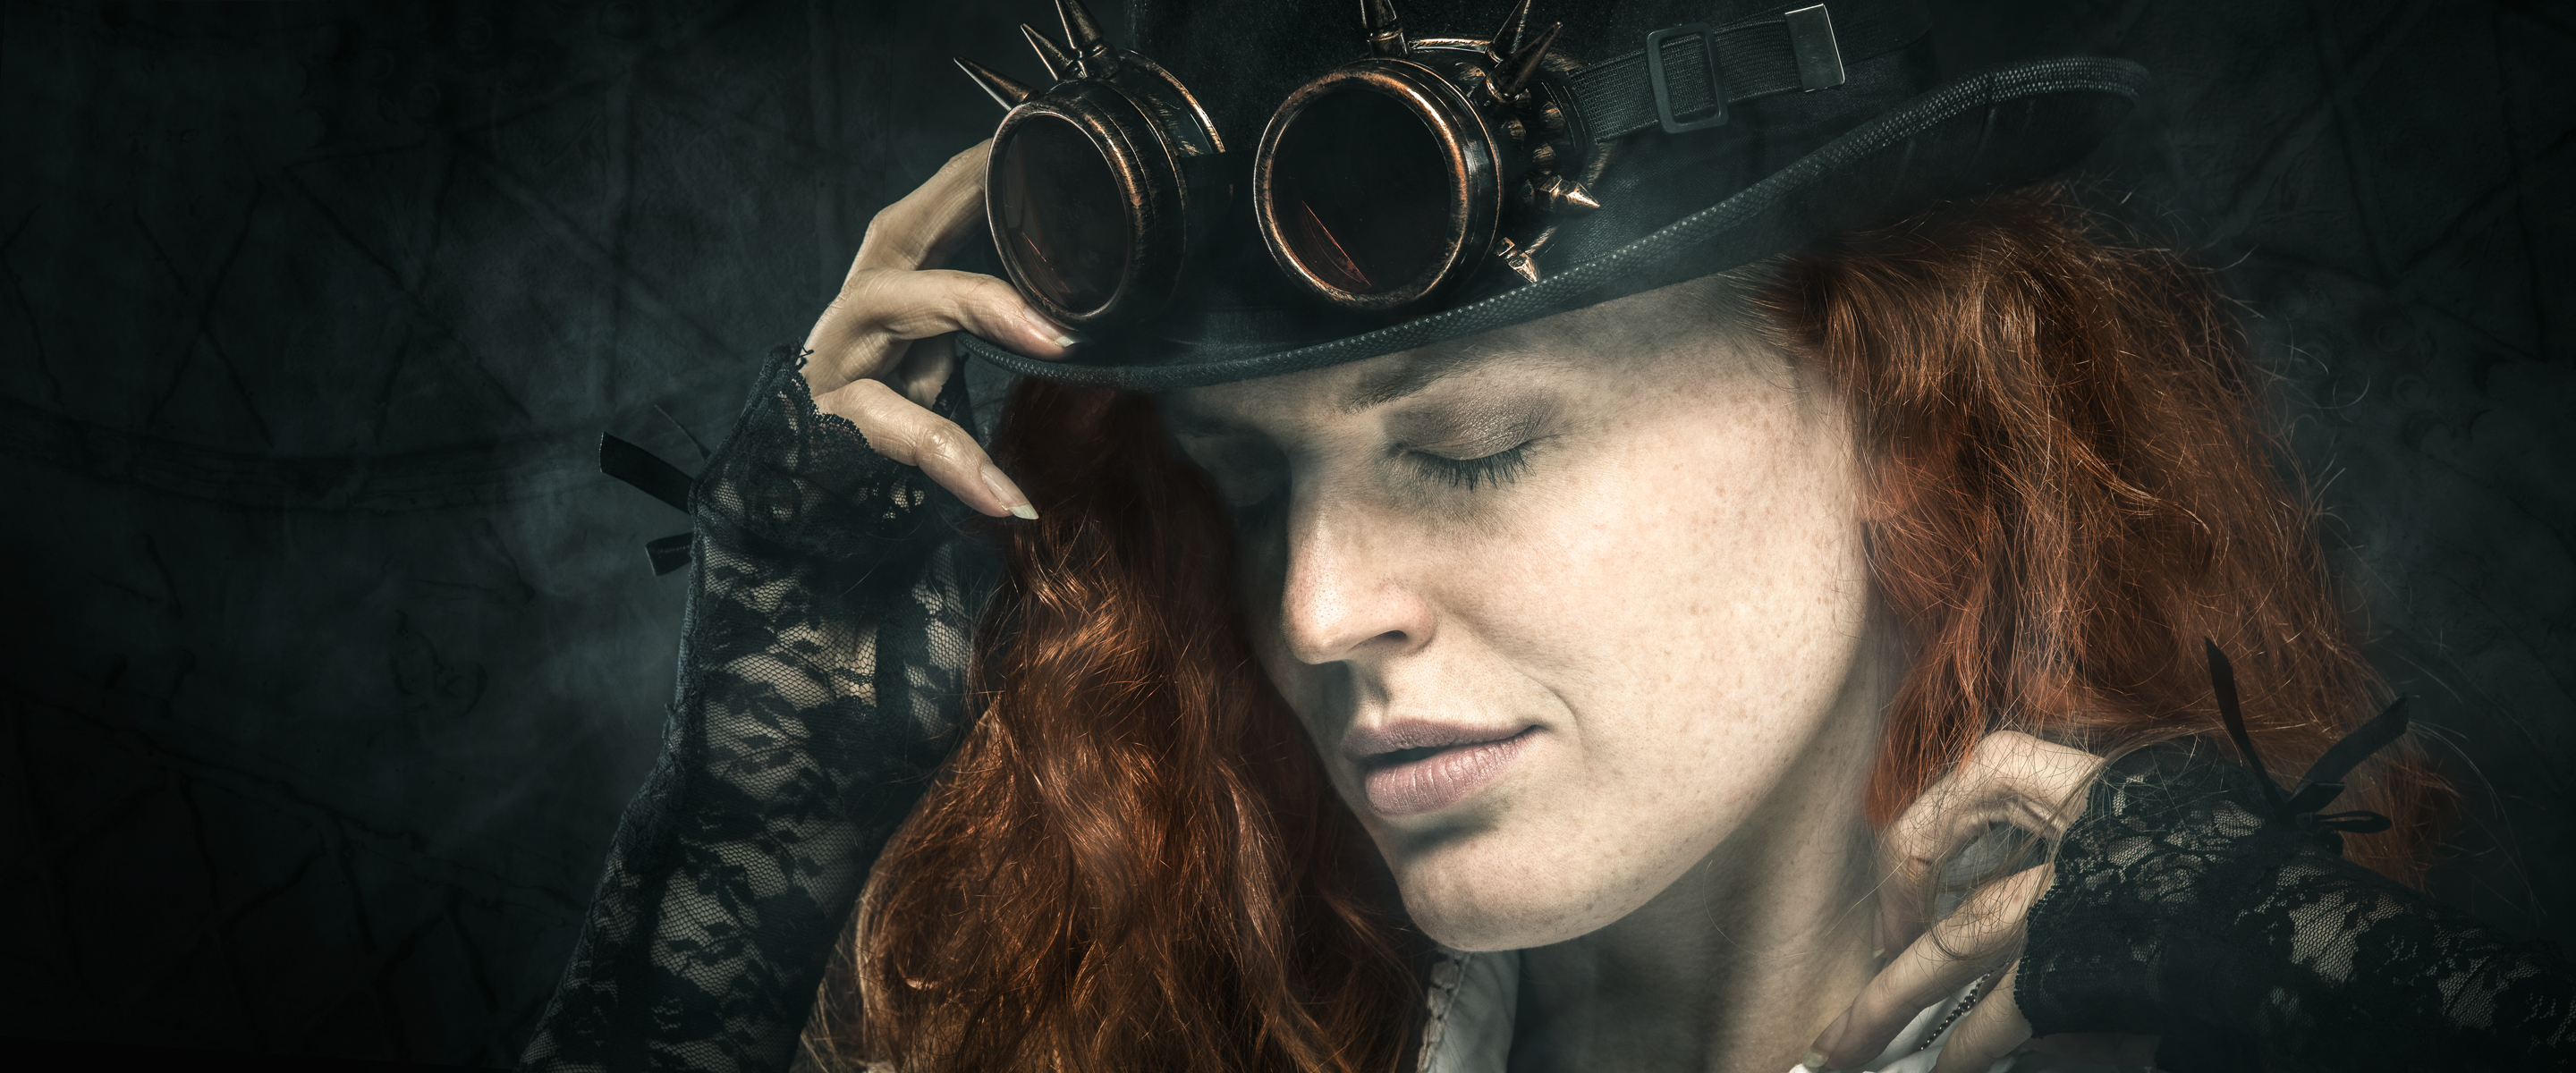 S. Wickenkamp - Portraitfotografie, Peoplefotografie, Workshop, Steampunk - Hamburg